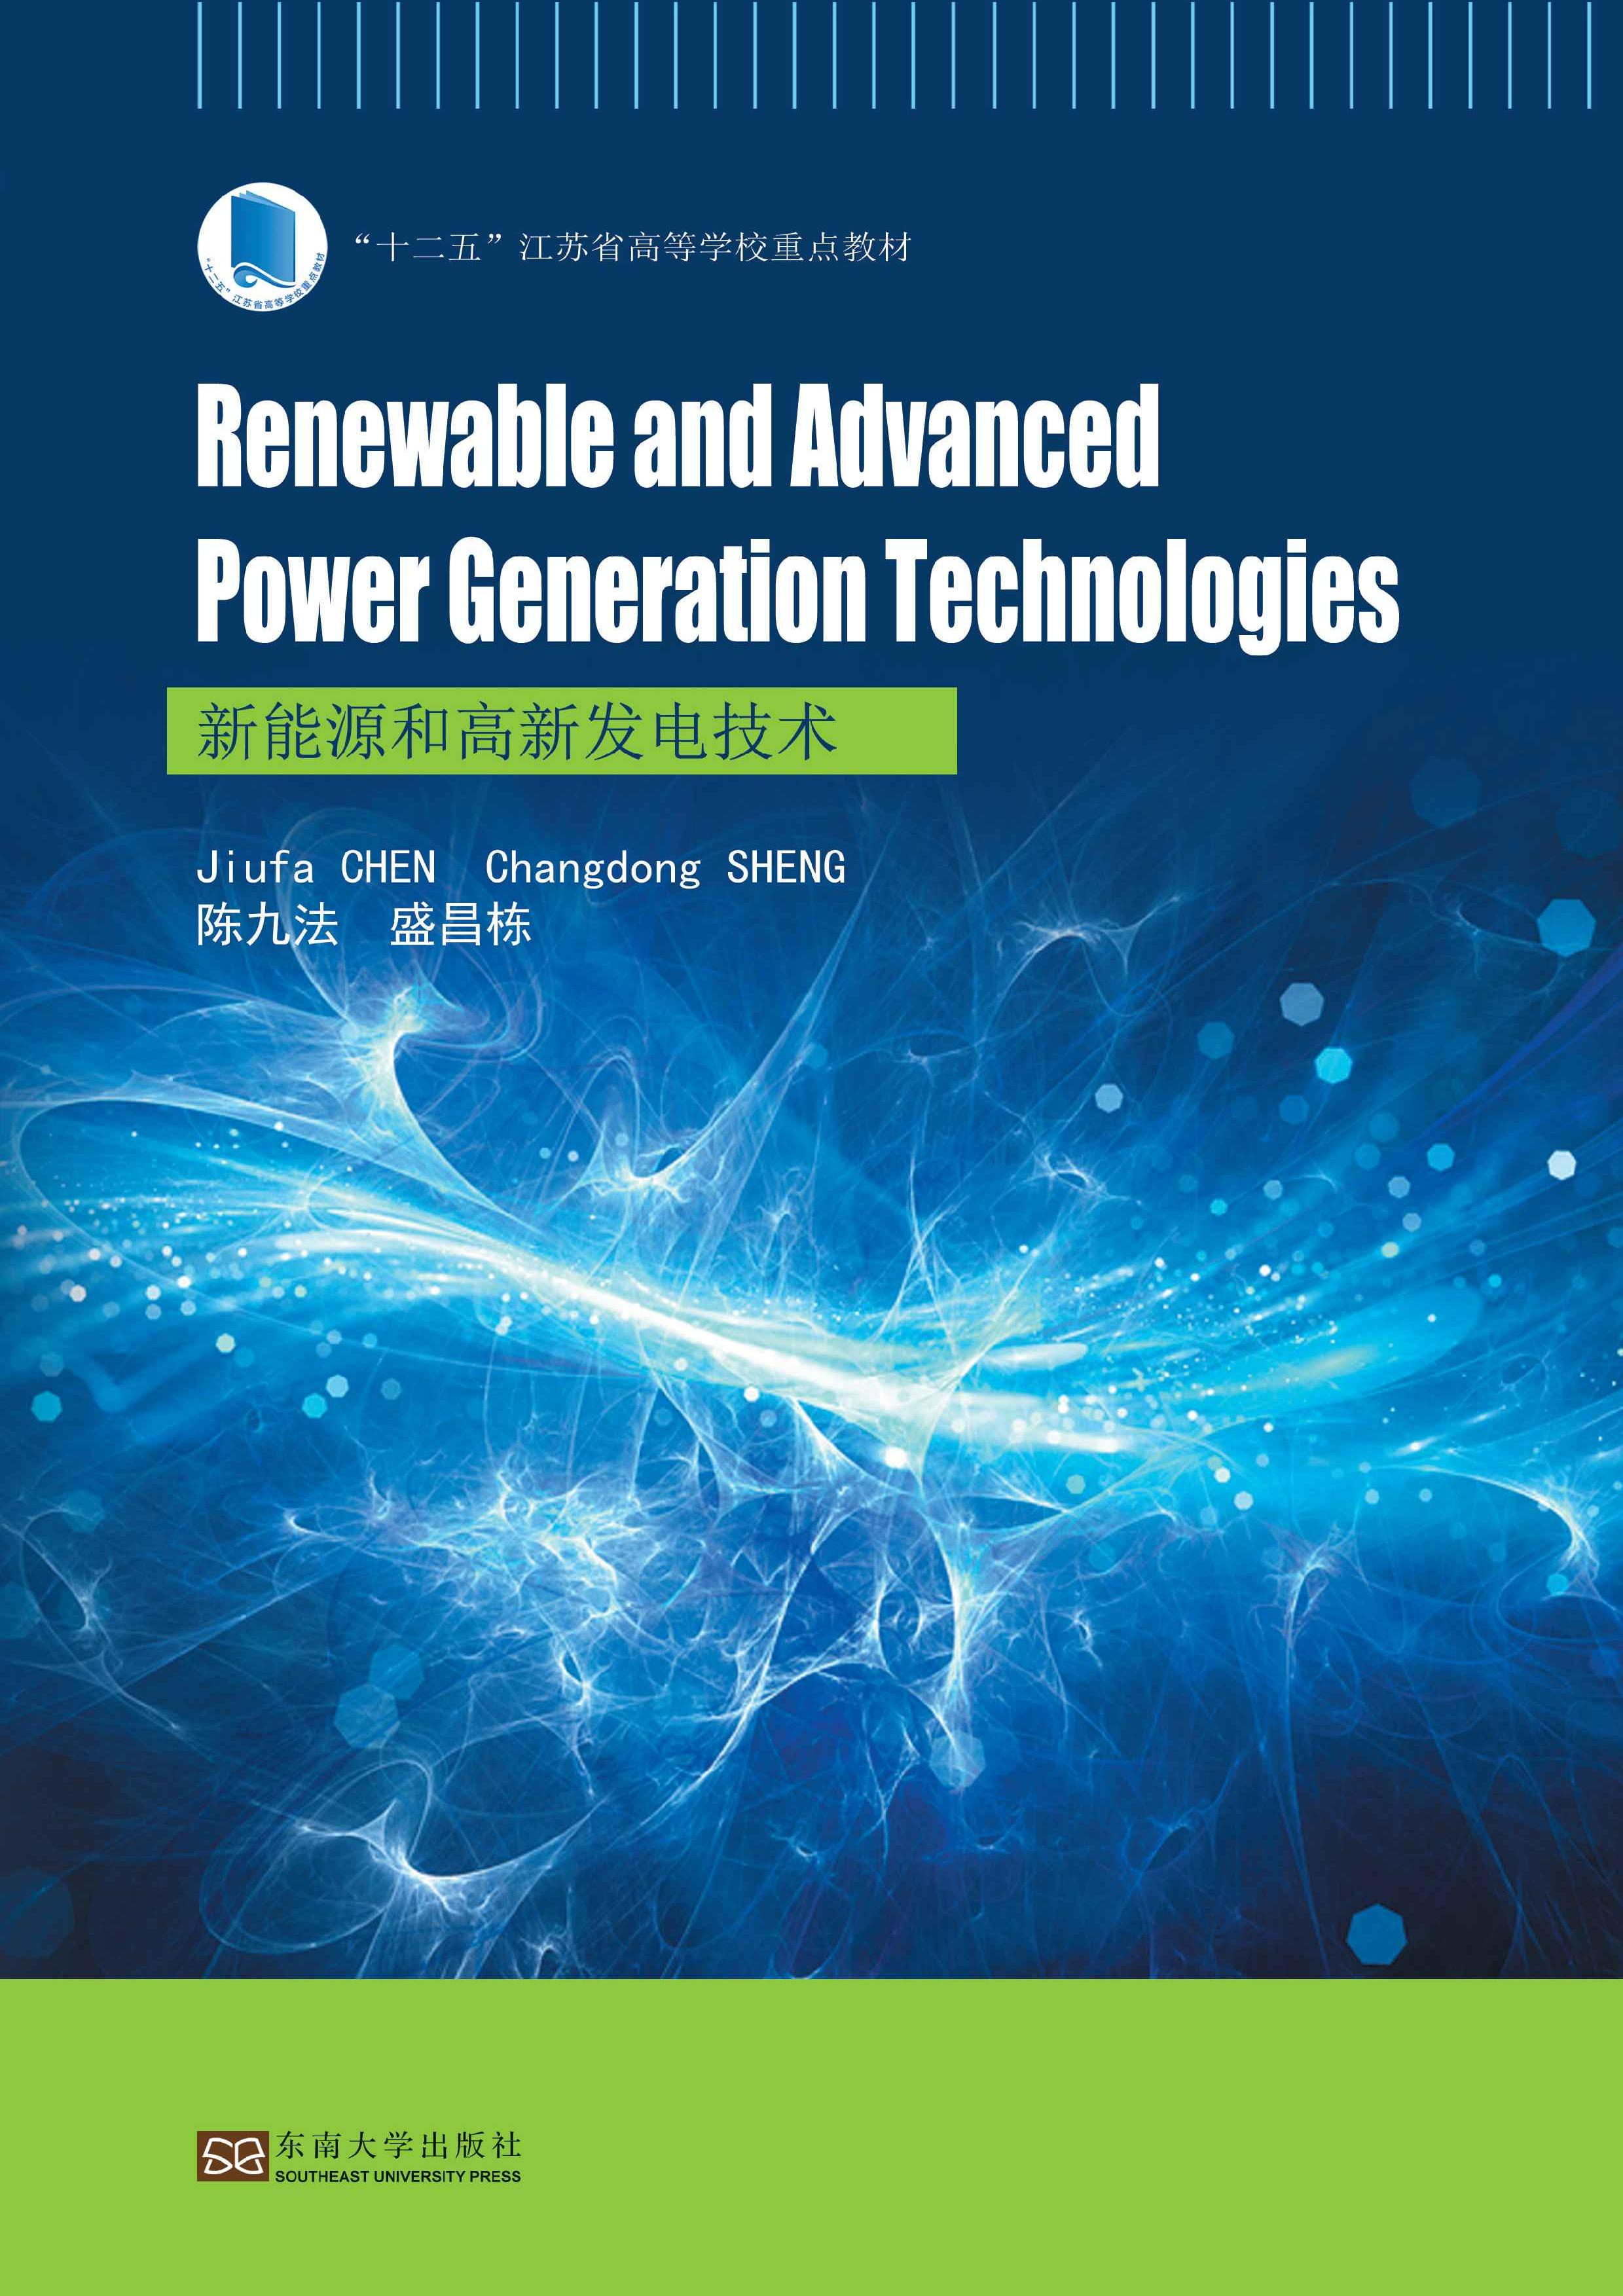 Renewable and Advanced Power Generation Technologies